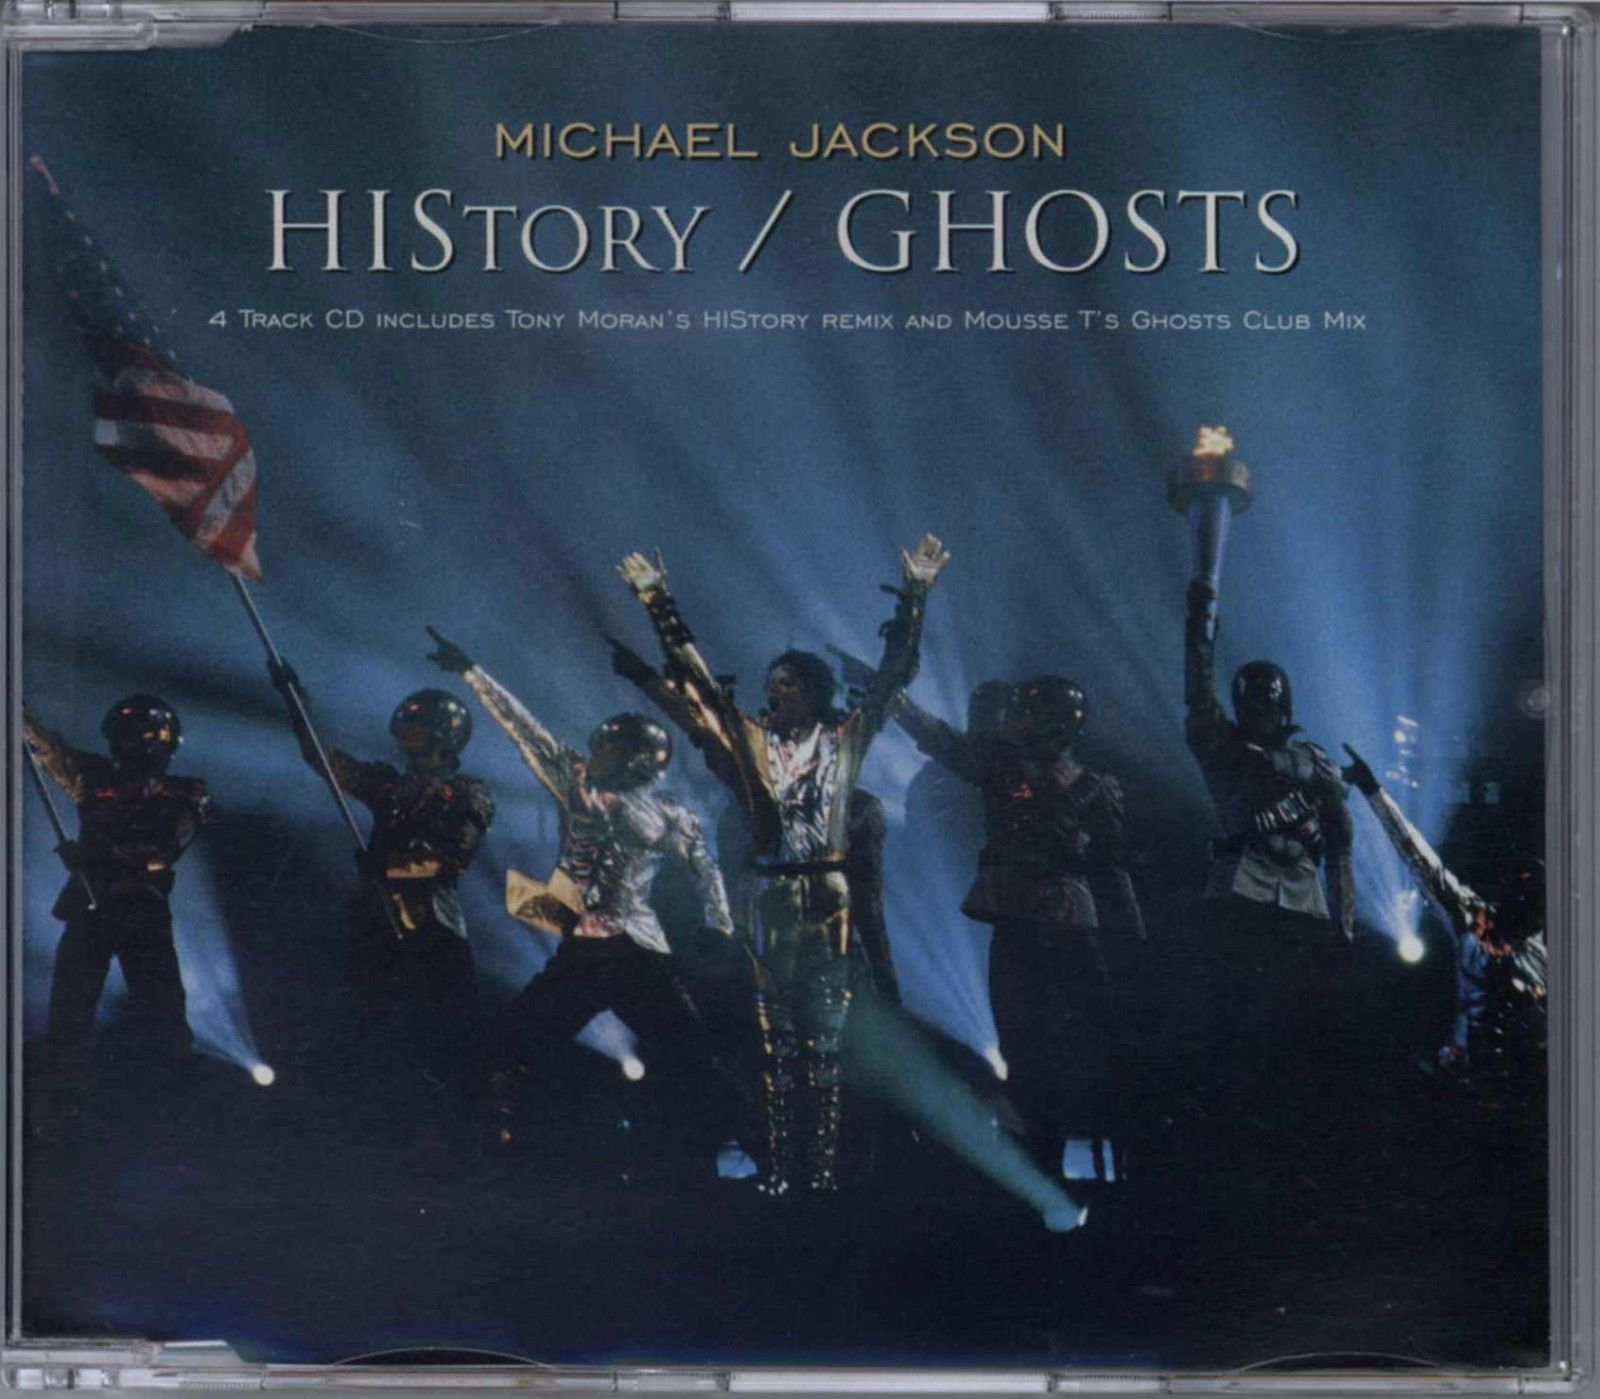 MICHAEL JACKSON - HISTORY / GHOSTS 1997 UK CD SINGLE PART 1 EPIC - 6647962